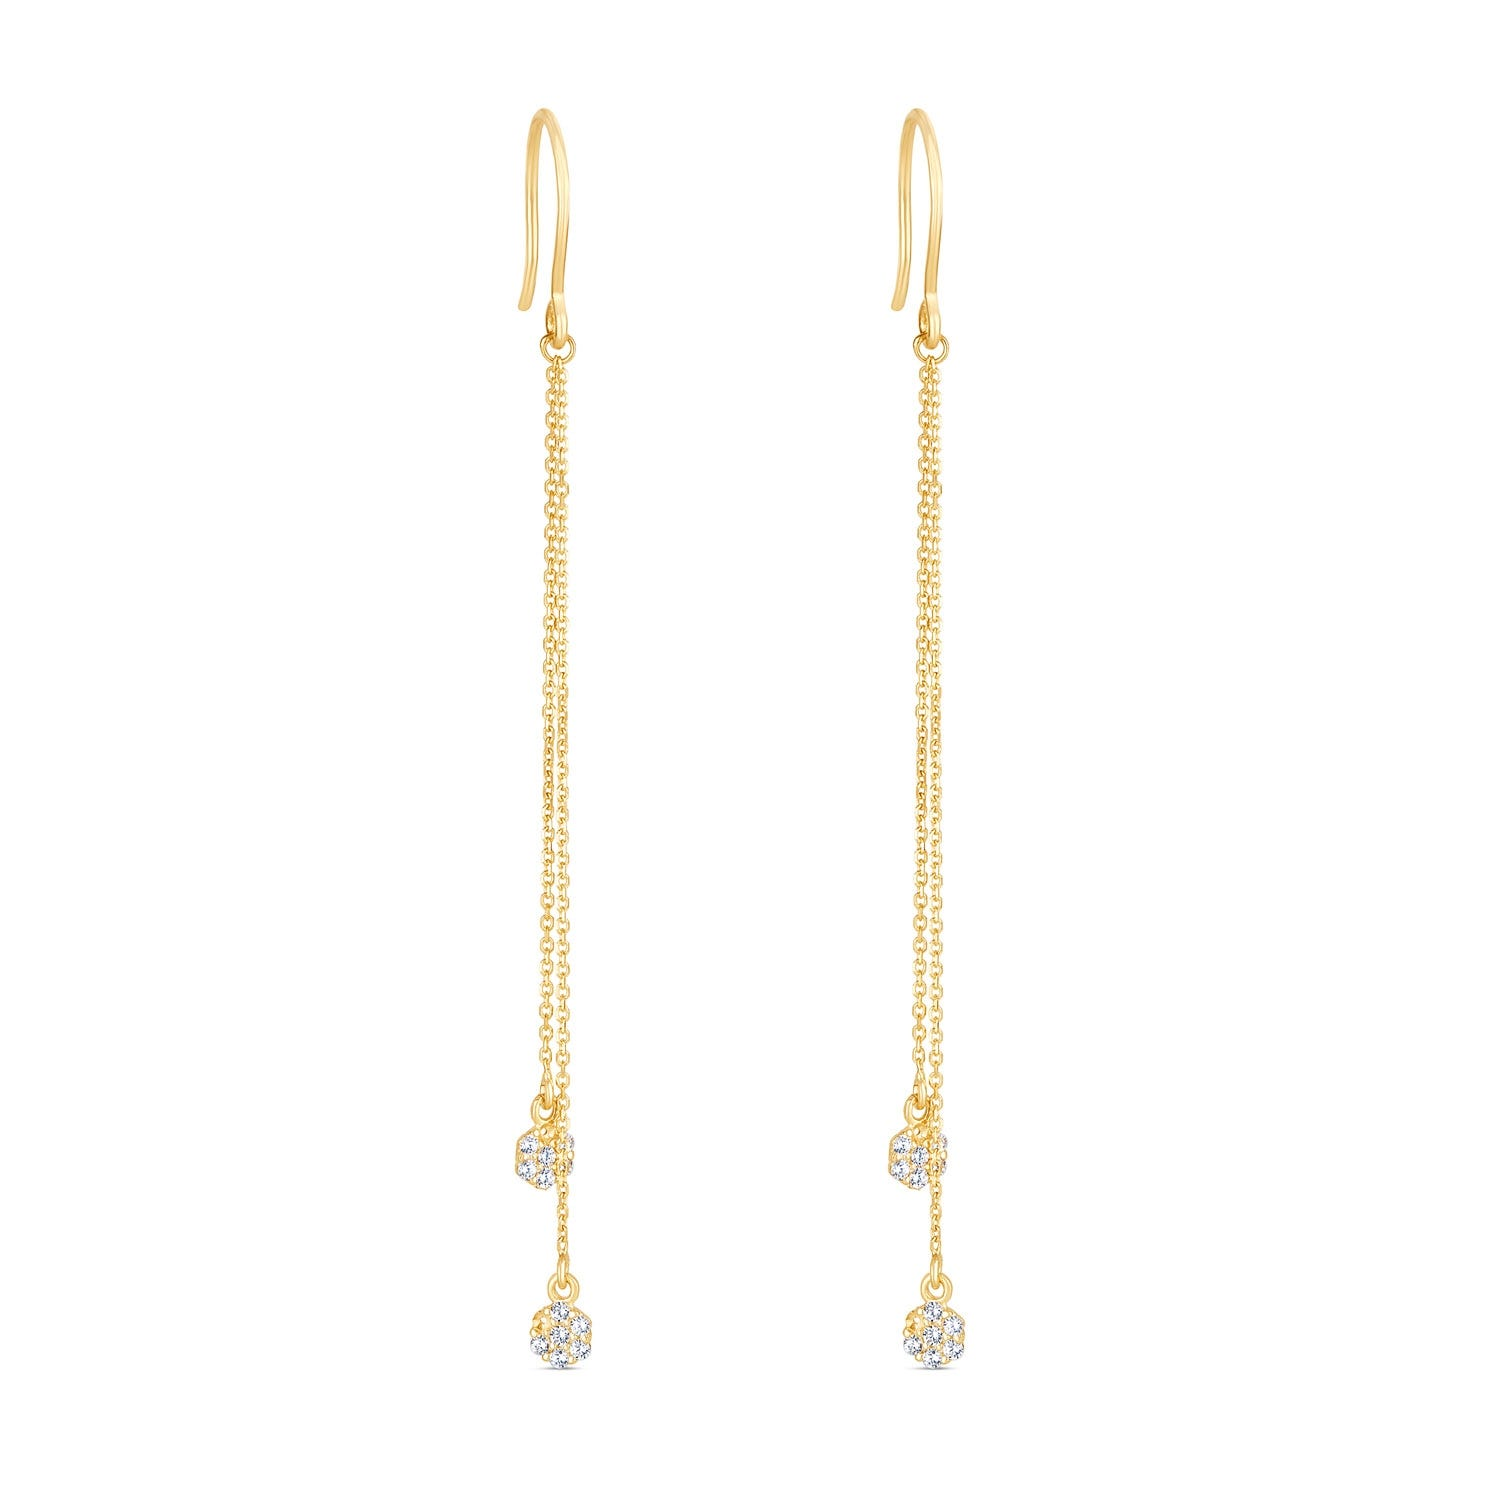 Special Price - 9ct Yellow Gold Cubic Zirconia Cluster Chain Earrings